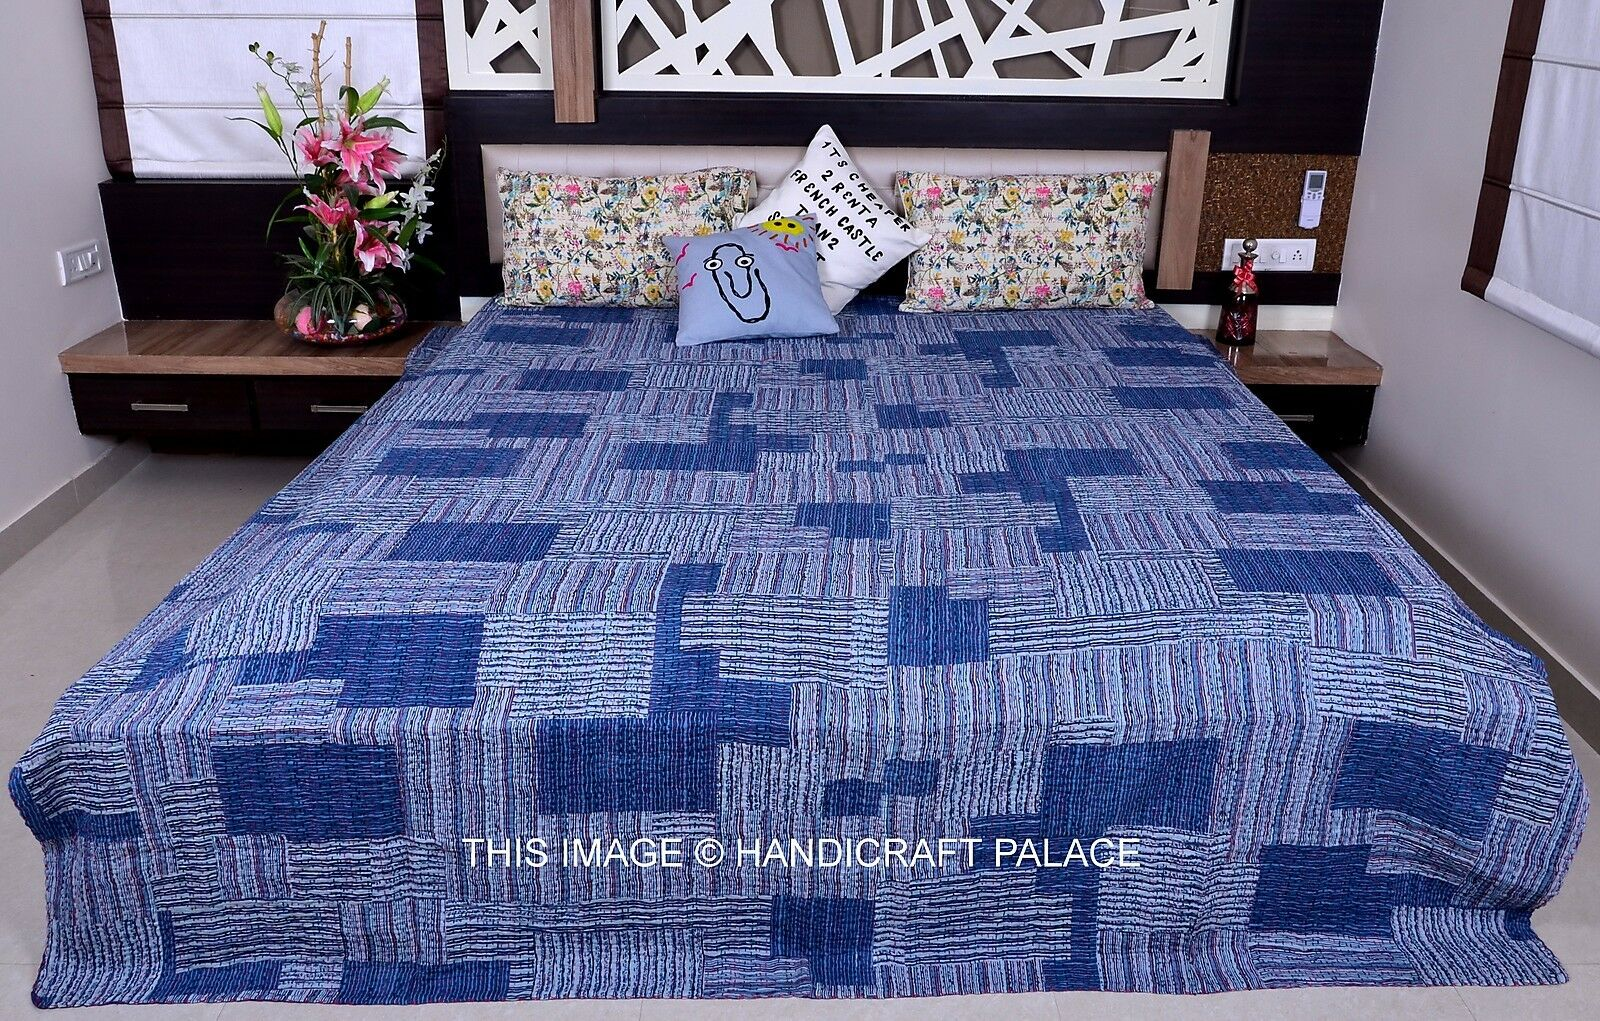 Indian Abstract Printed Kantha Quilt Queen Bedcover Blau Bedspread Blanket Throw